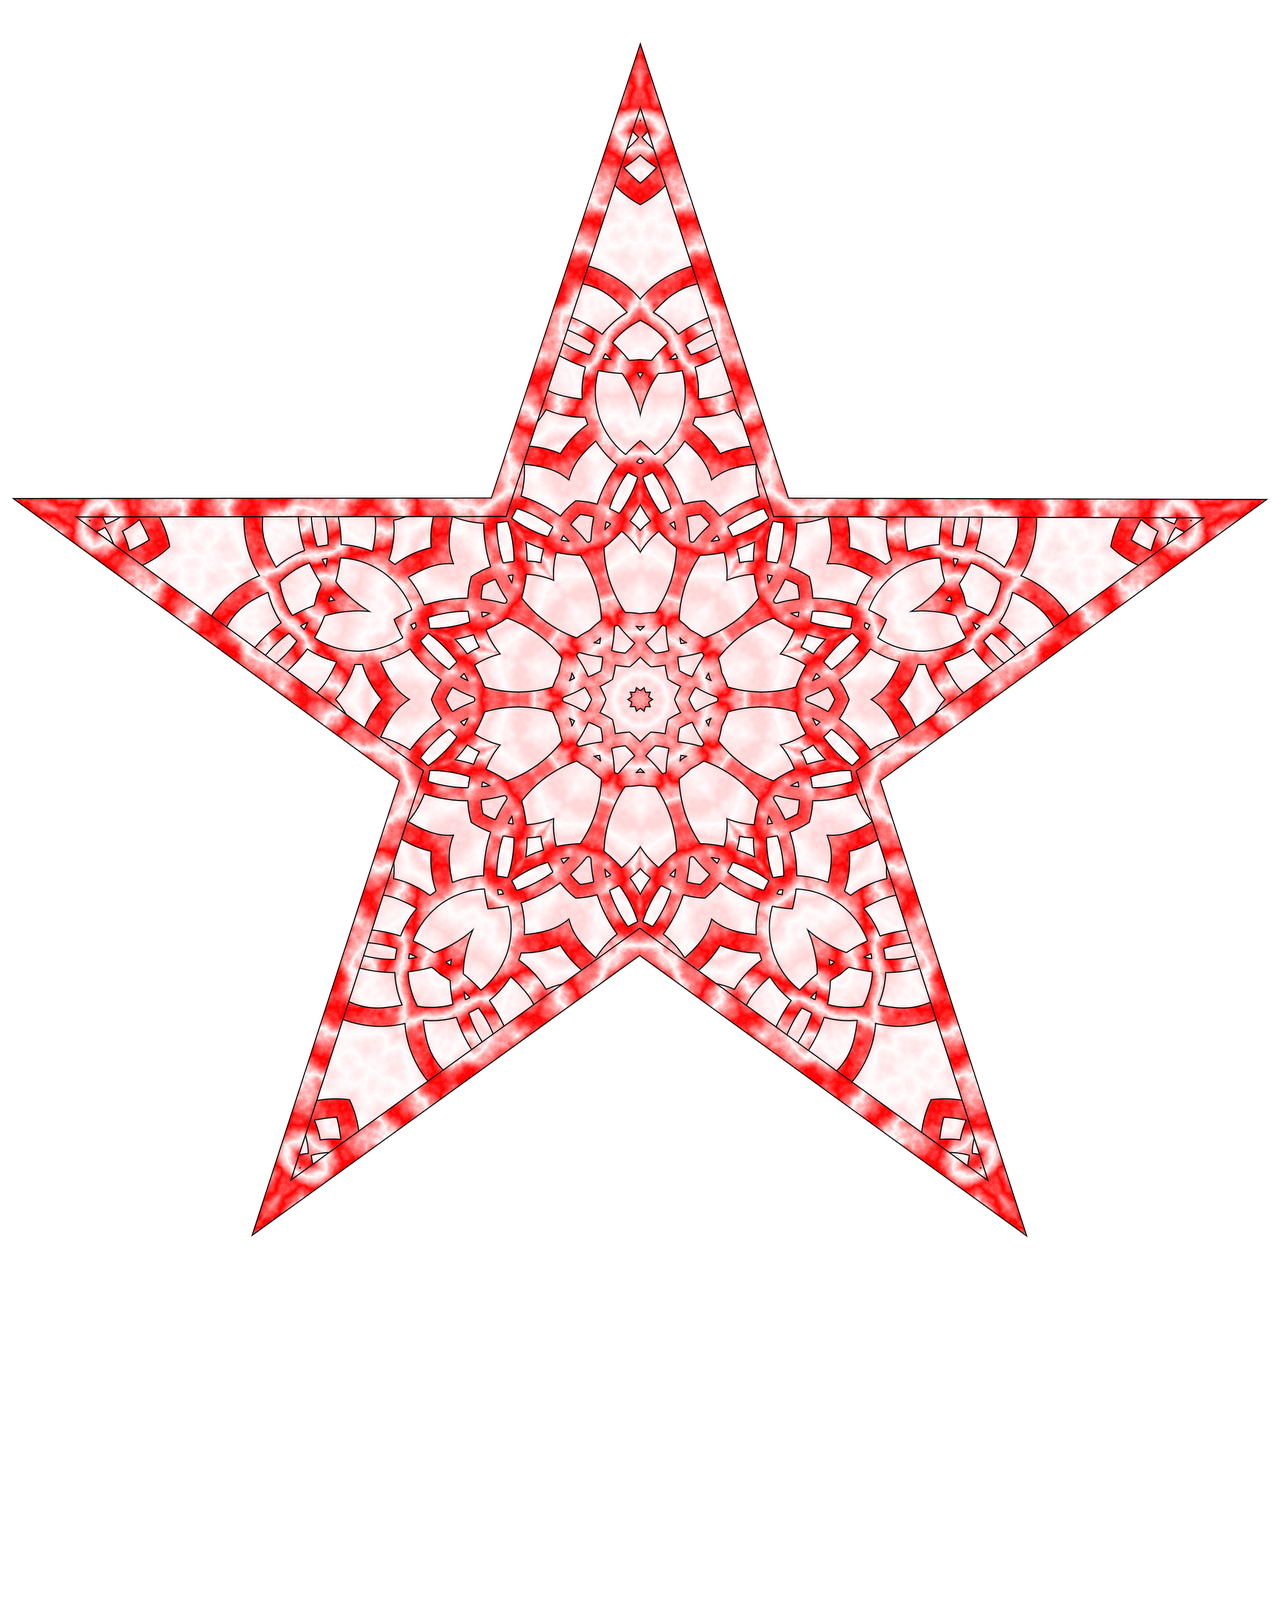 Christmas tree star topper clipart graphic freeuse download Don't Eat the Paste: Printable Paper Star Tree Topper graphic freeuse download